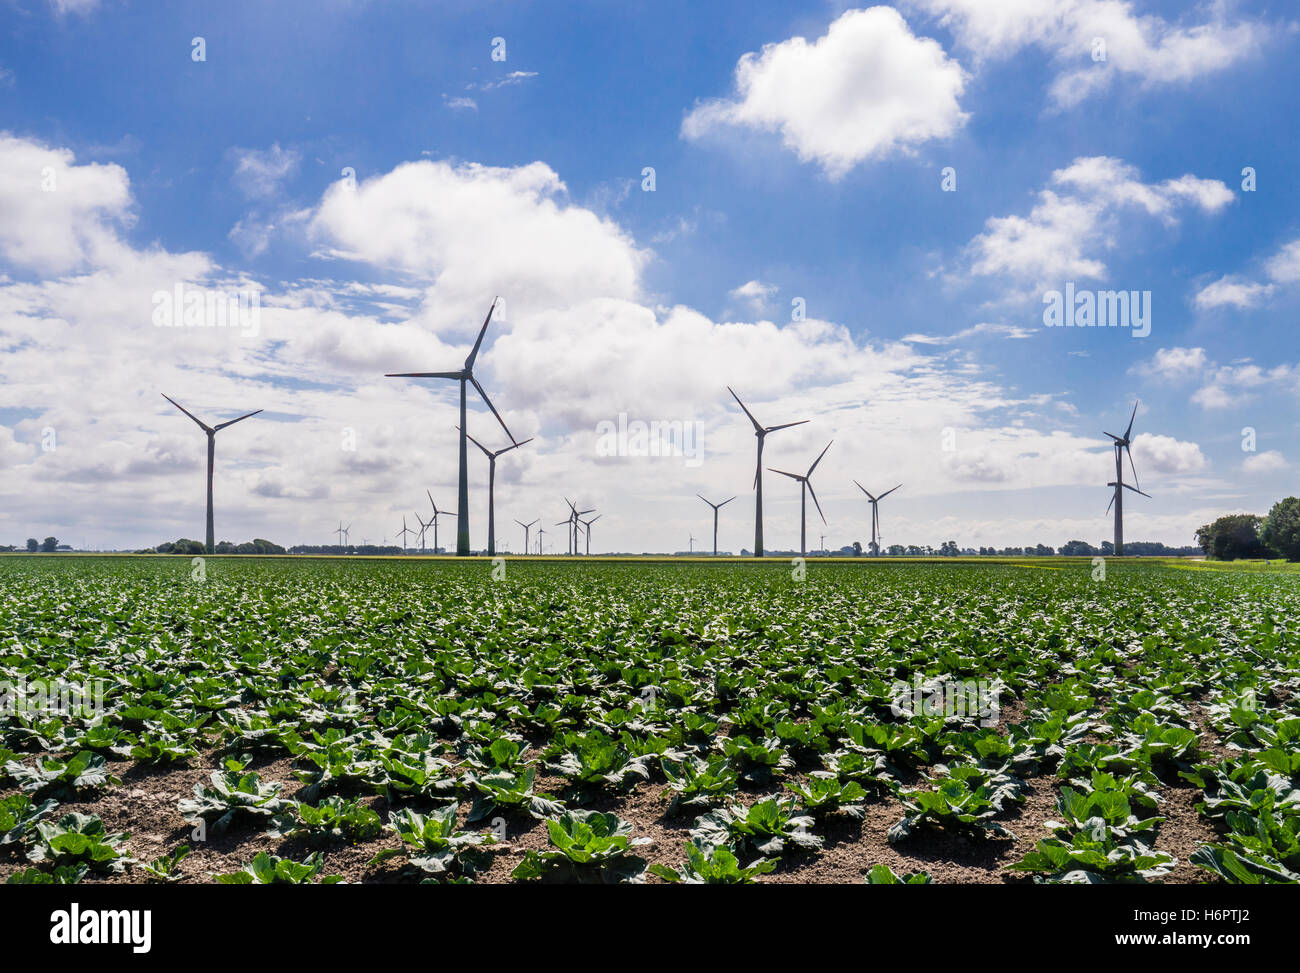 Germany, Schleswig-Holstein, the flat landscape of Dithmarschen with wind turbines and cabbages - Stock Image